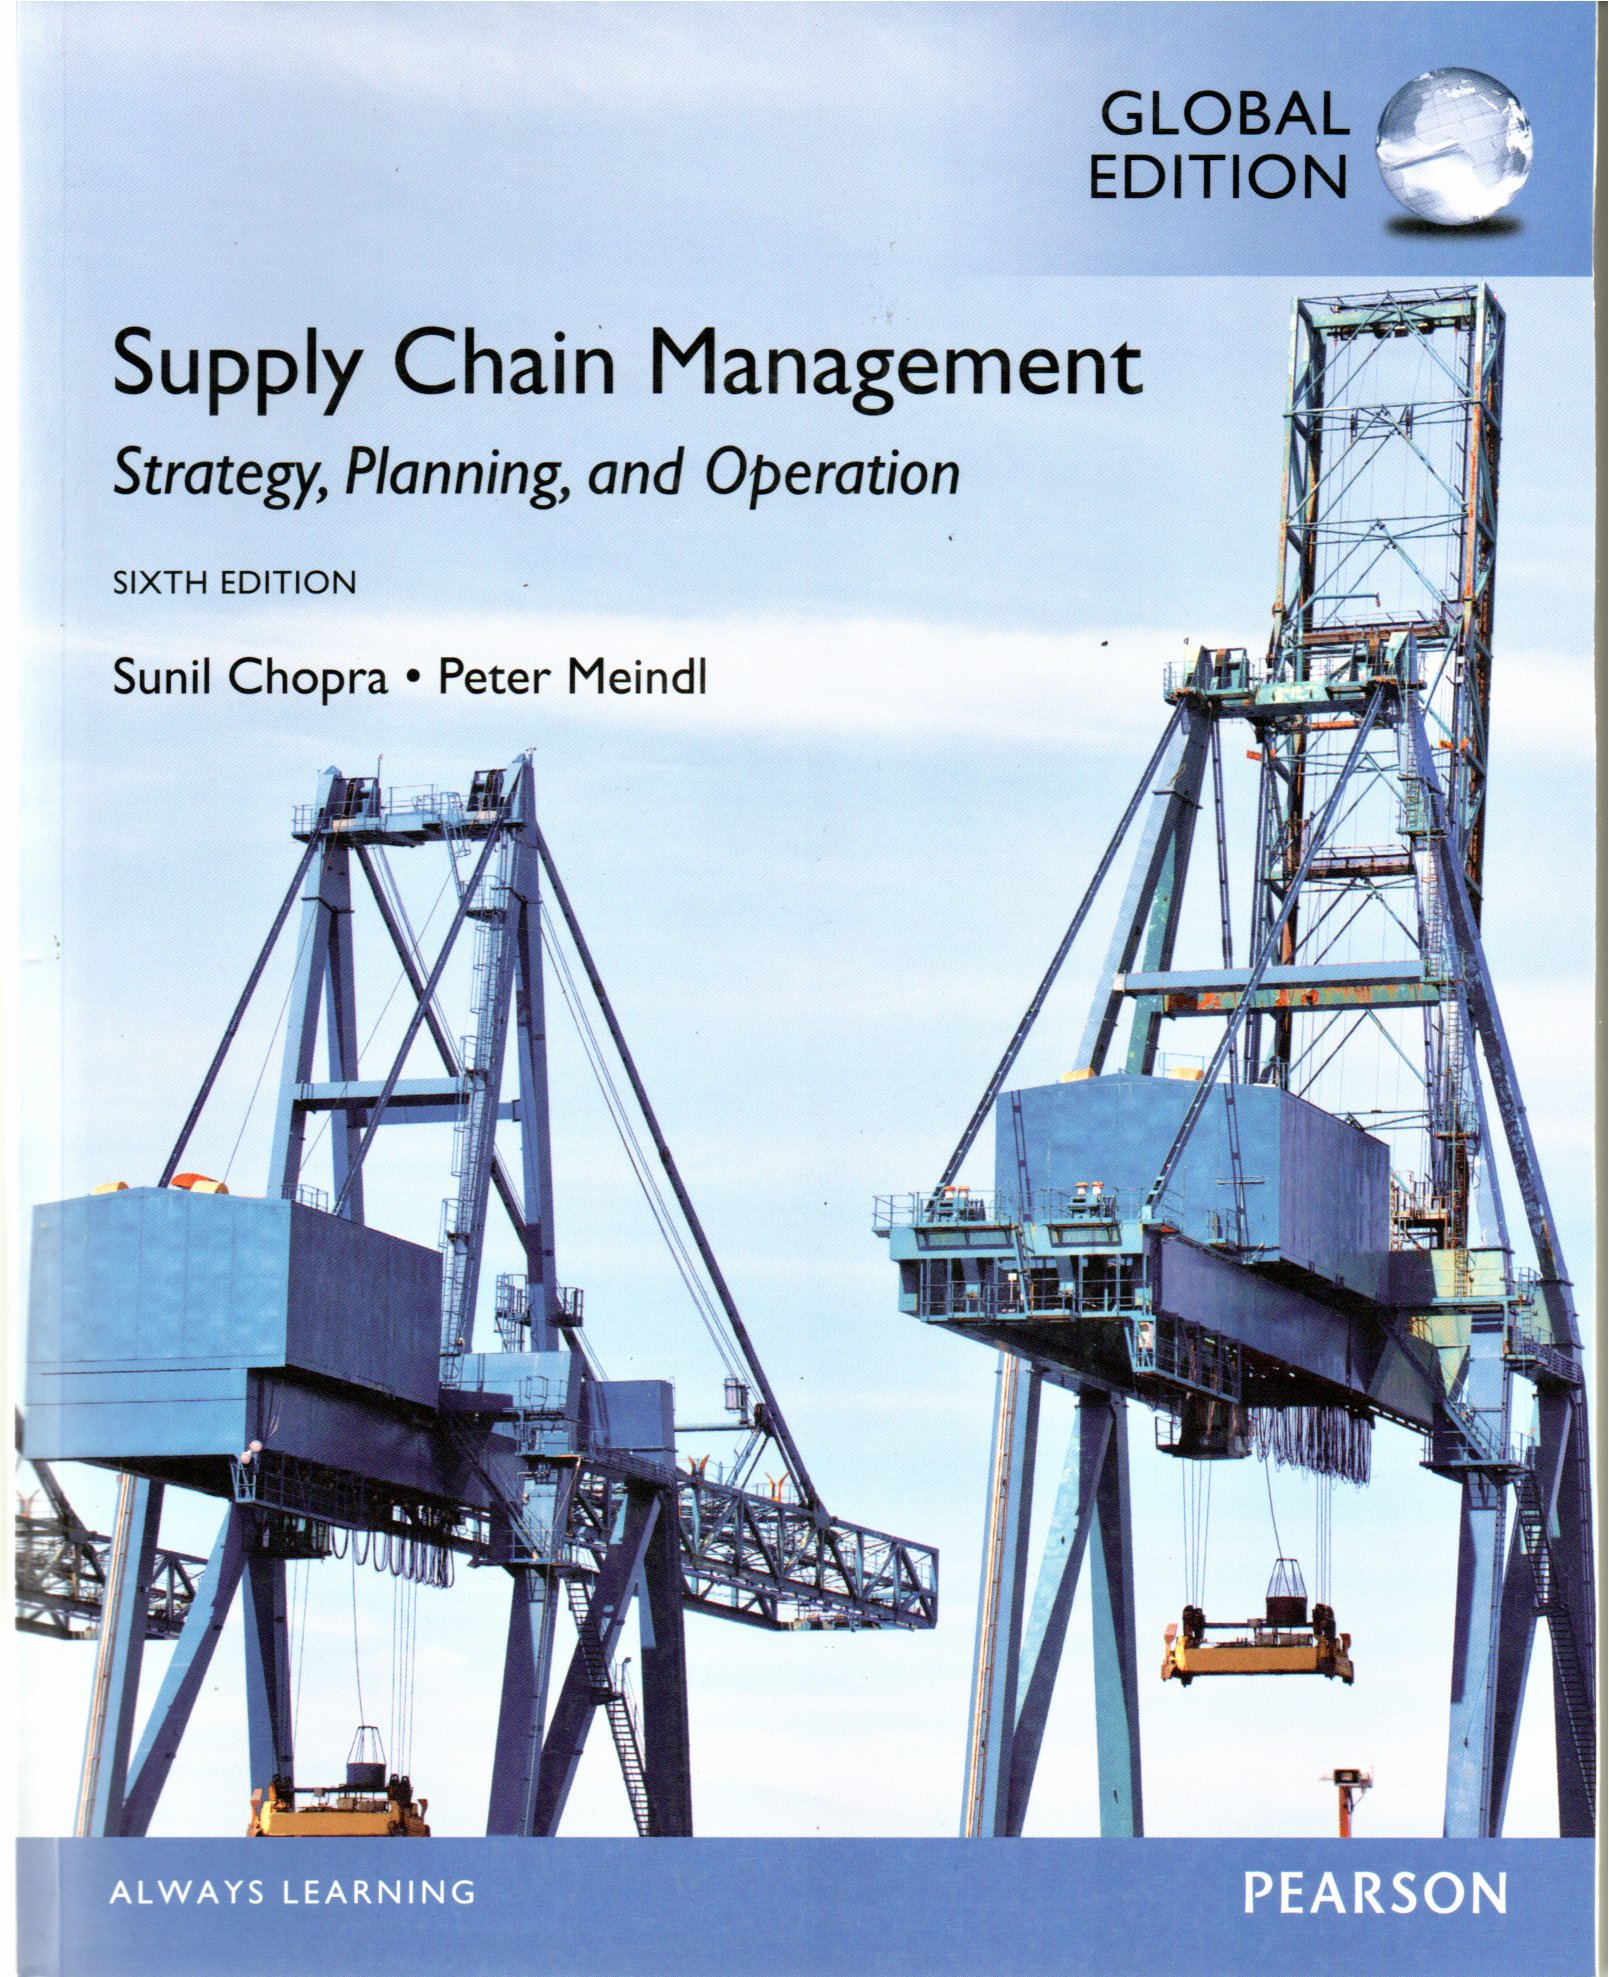 Supply chain management strategy,planning and operation 6ed / Sunil Chopra